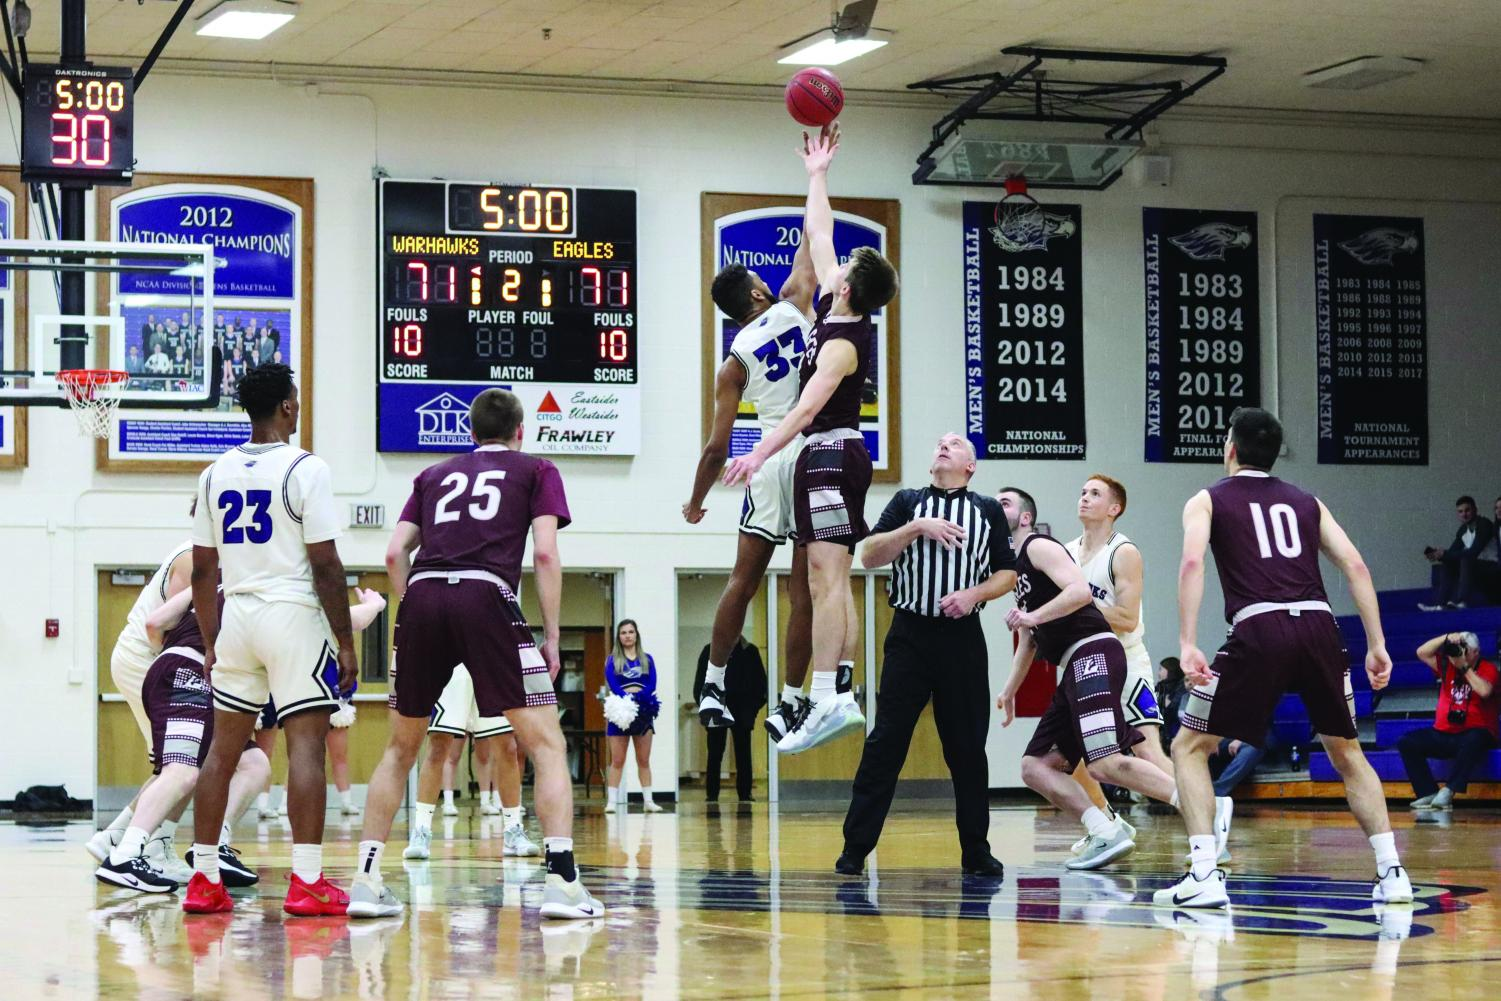 Trevon Chislom squares up for the tipoff to begin overtime. The Warhawks tied the game late in the fourth quarter, forcing overtime. However, they ran out of gas allowing La Crosse a 9-0 run in the last period of play.